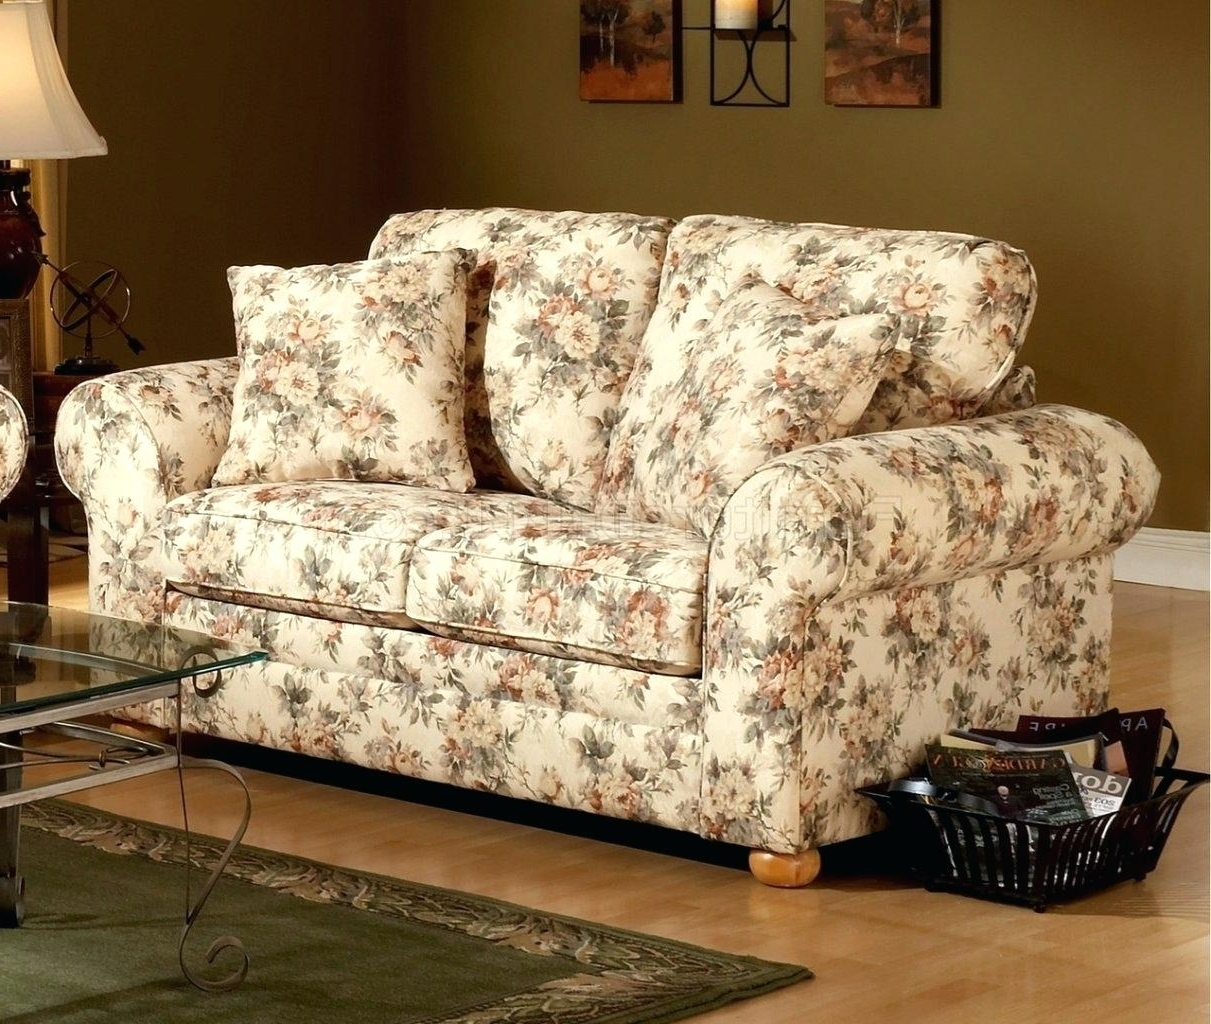 Chintz Floral Sofas Regarding Favorite Chairs: Chintz Chairs. Chintz Arm Chairs. Chintz Furniture For (Gallery 3 of 20)